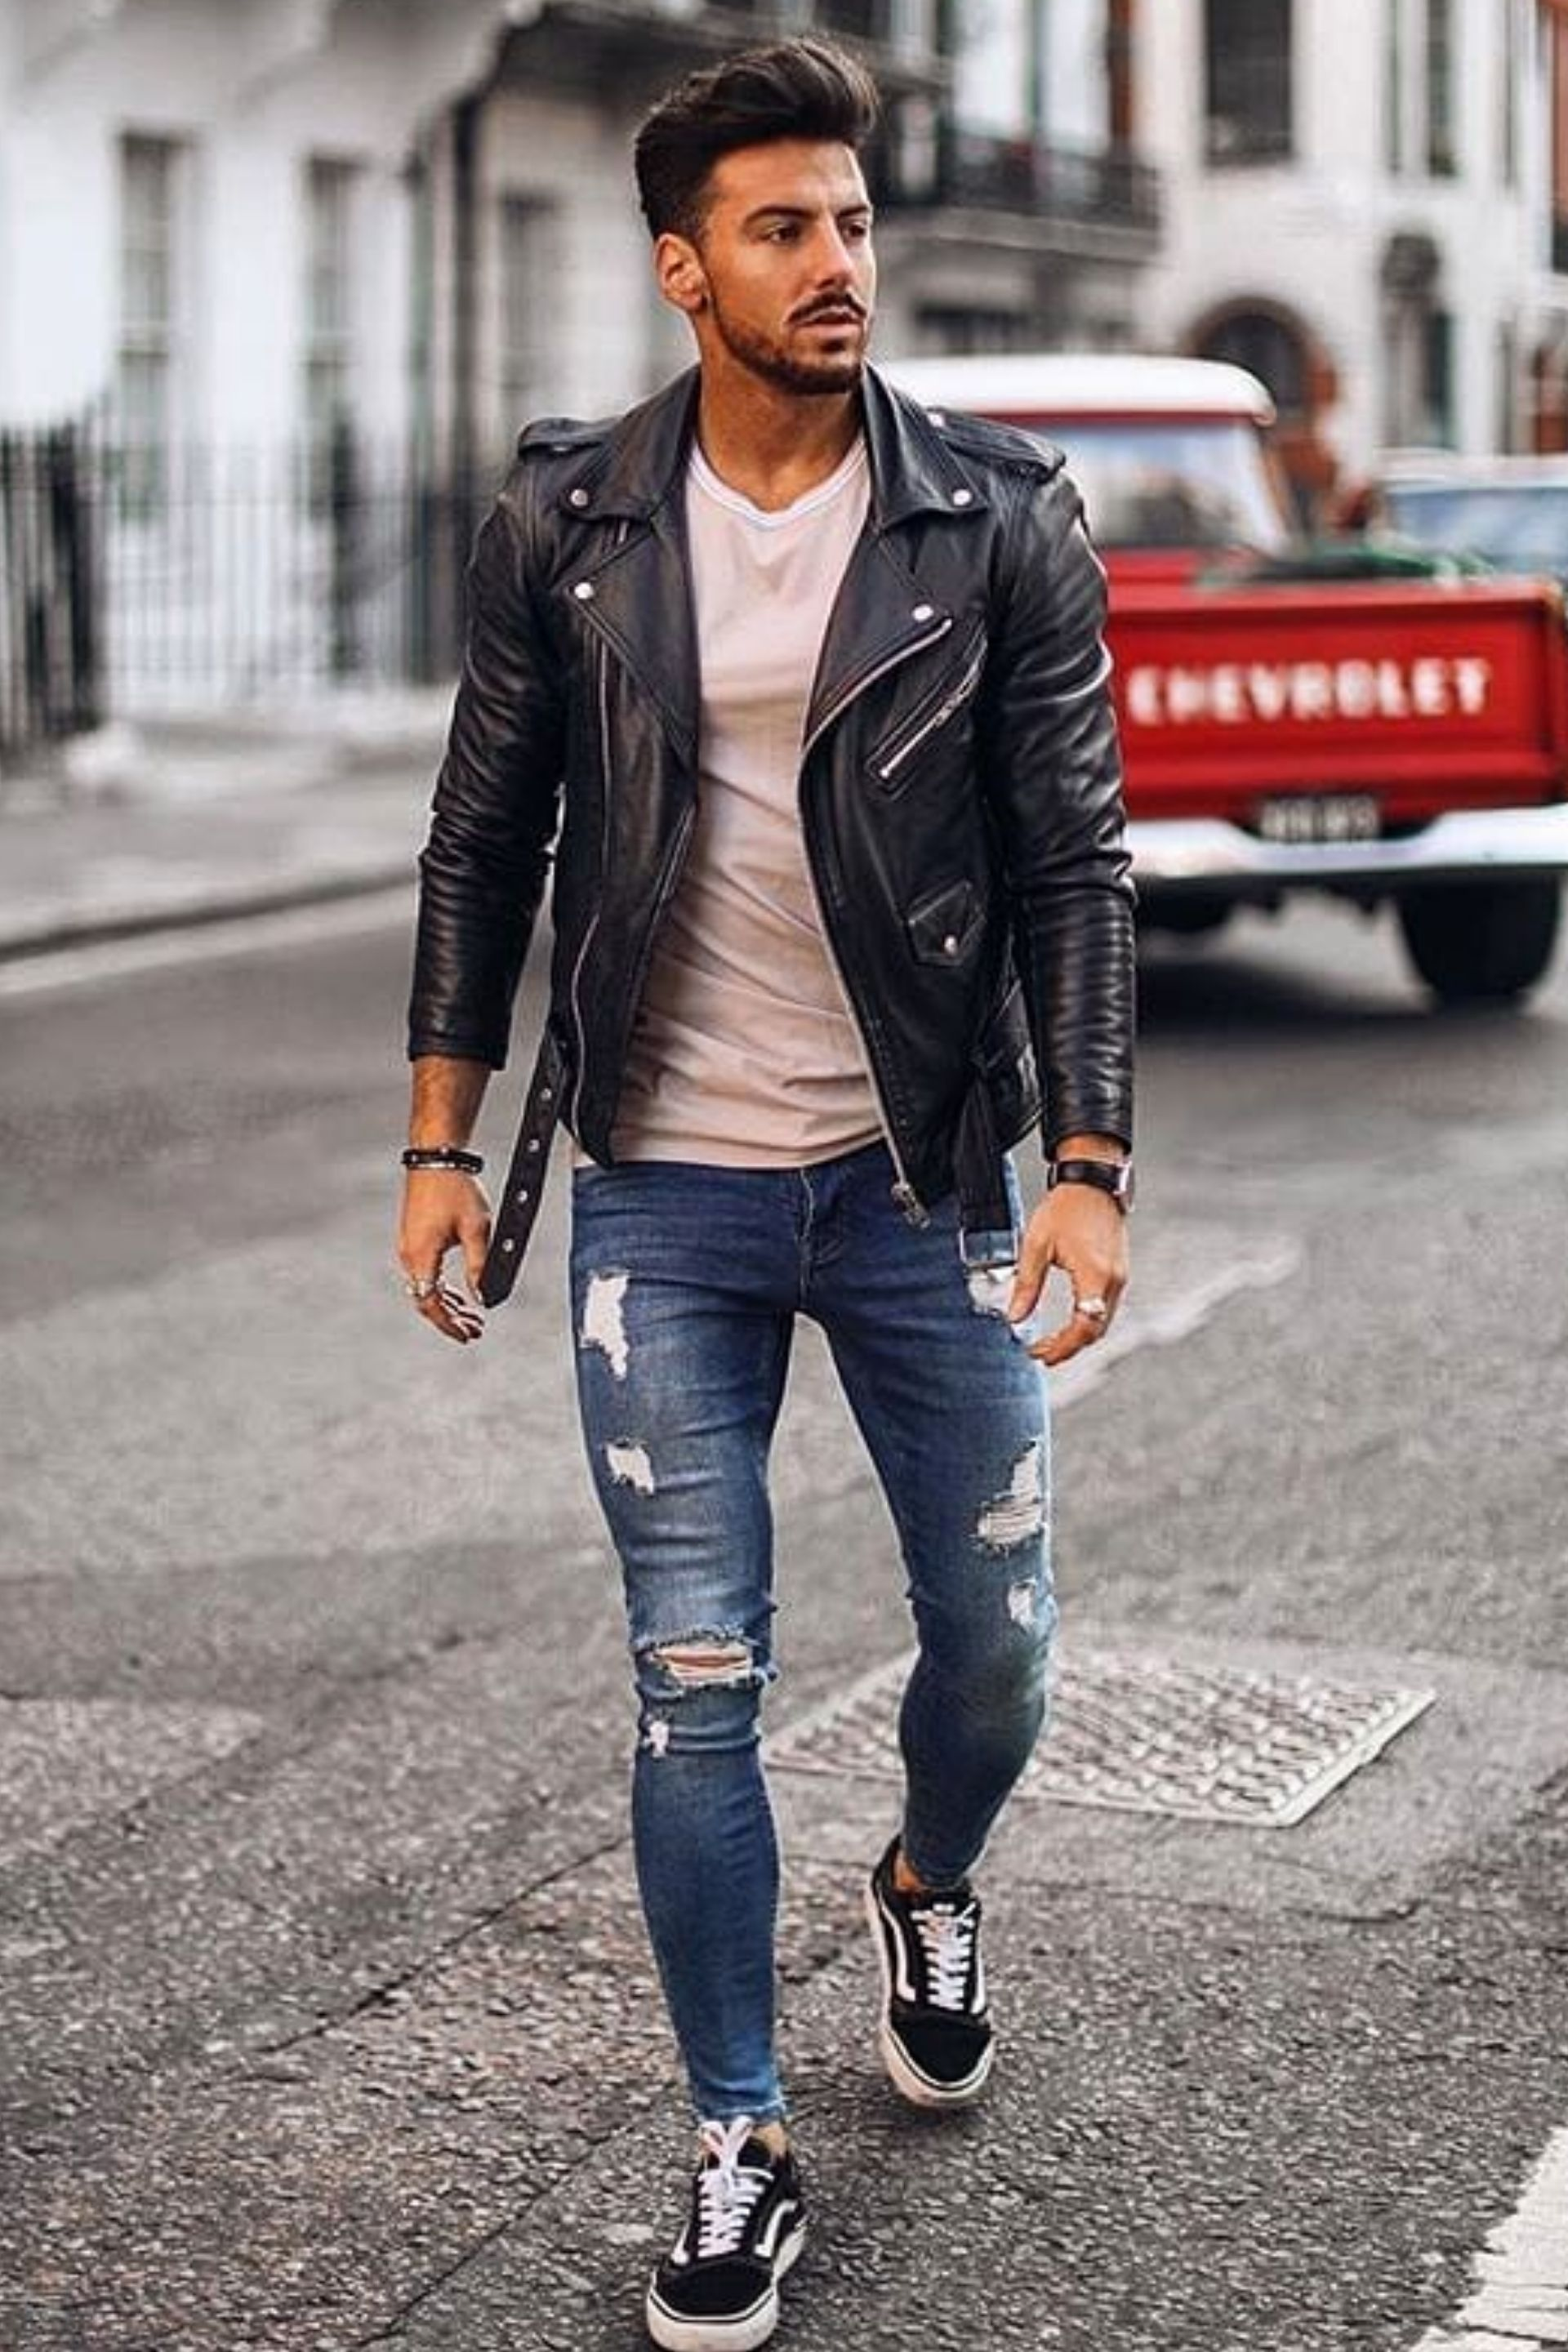 Men Street Style Leather Jacket Outfit Men Winter Outfits Men Leather Jacket Outfits [ 2880 x 1920 Pixel ]